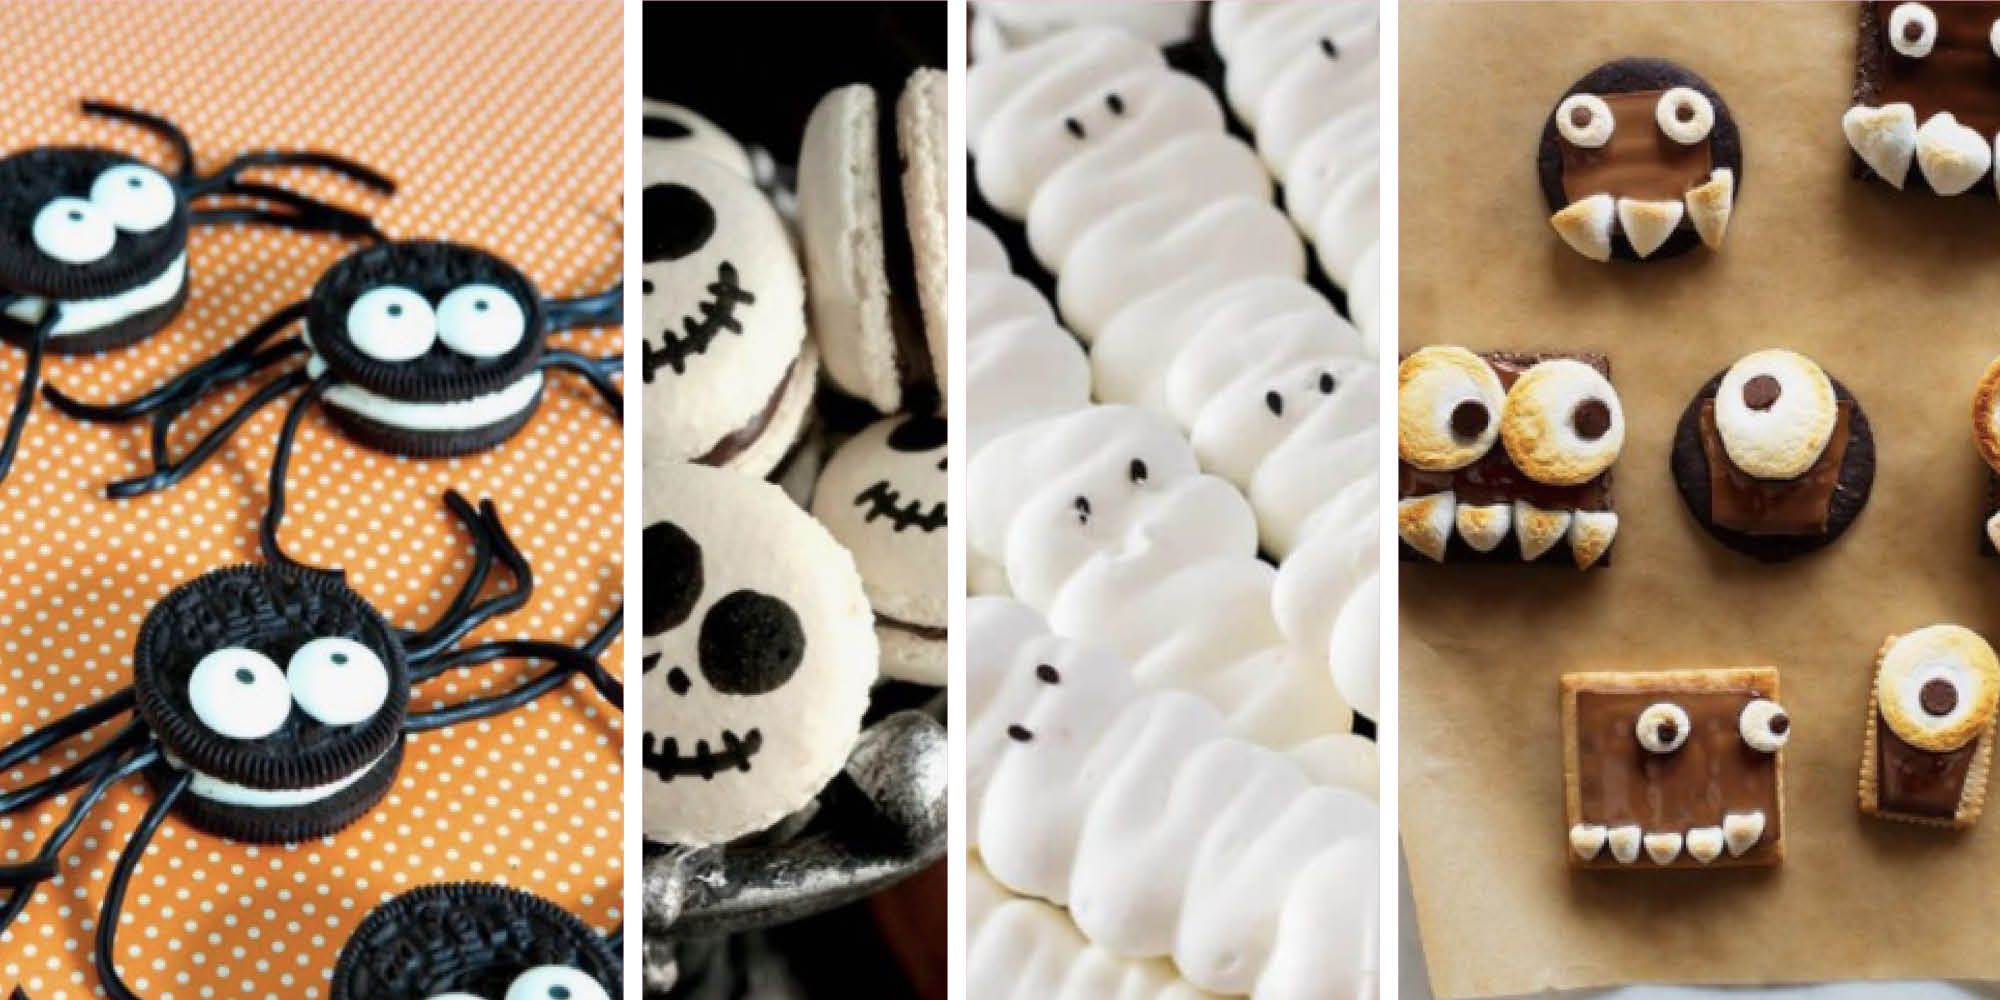 18 Halloween biscuits that are both frightening-yet-adorable